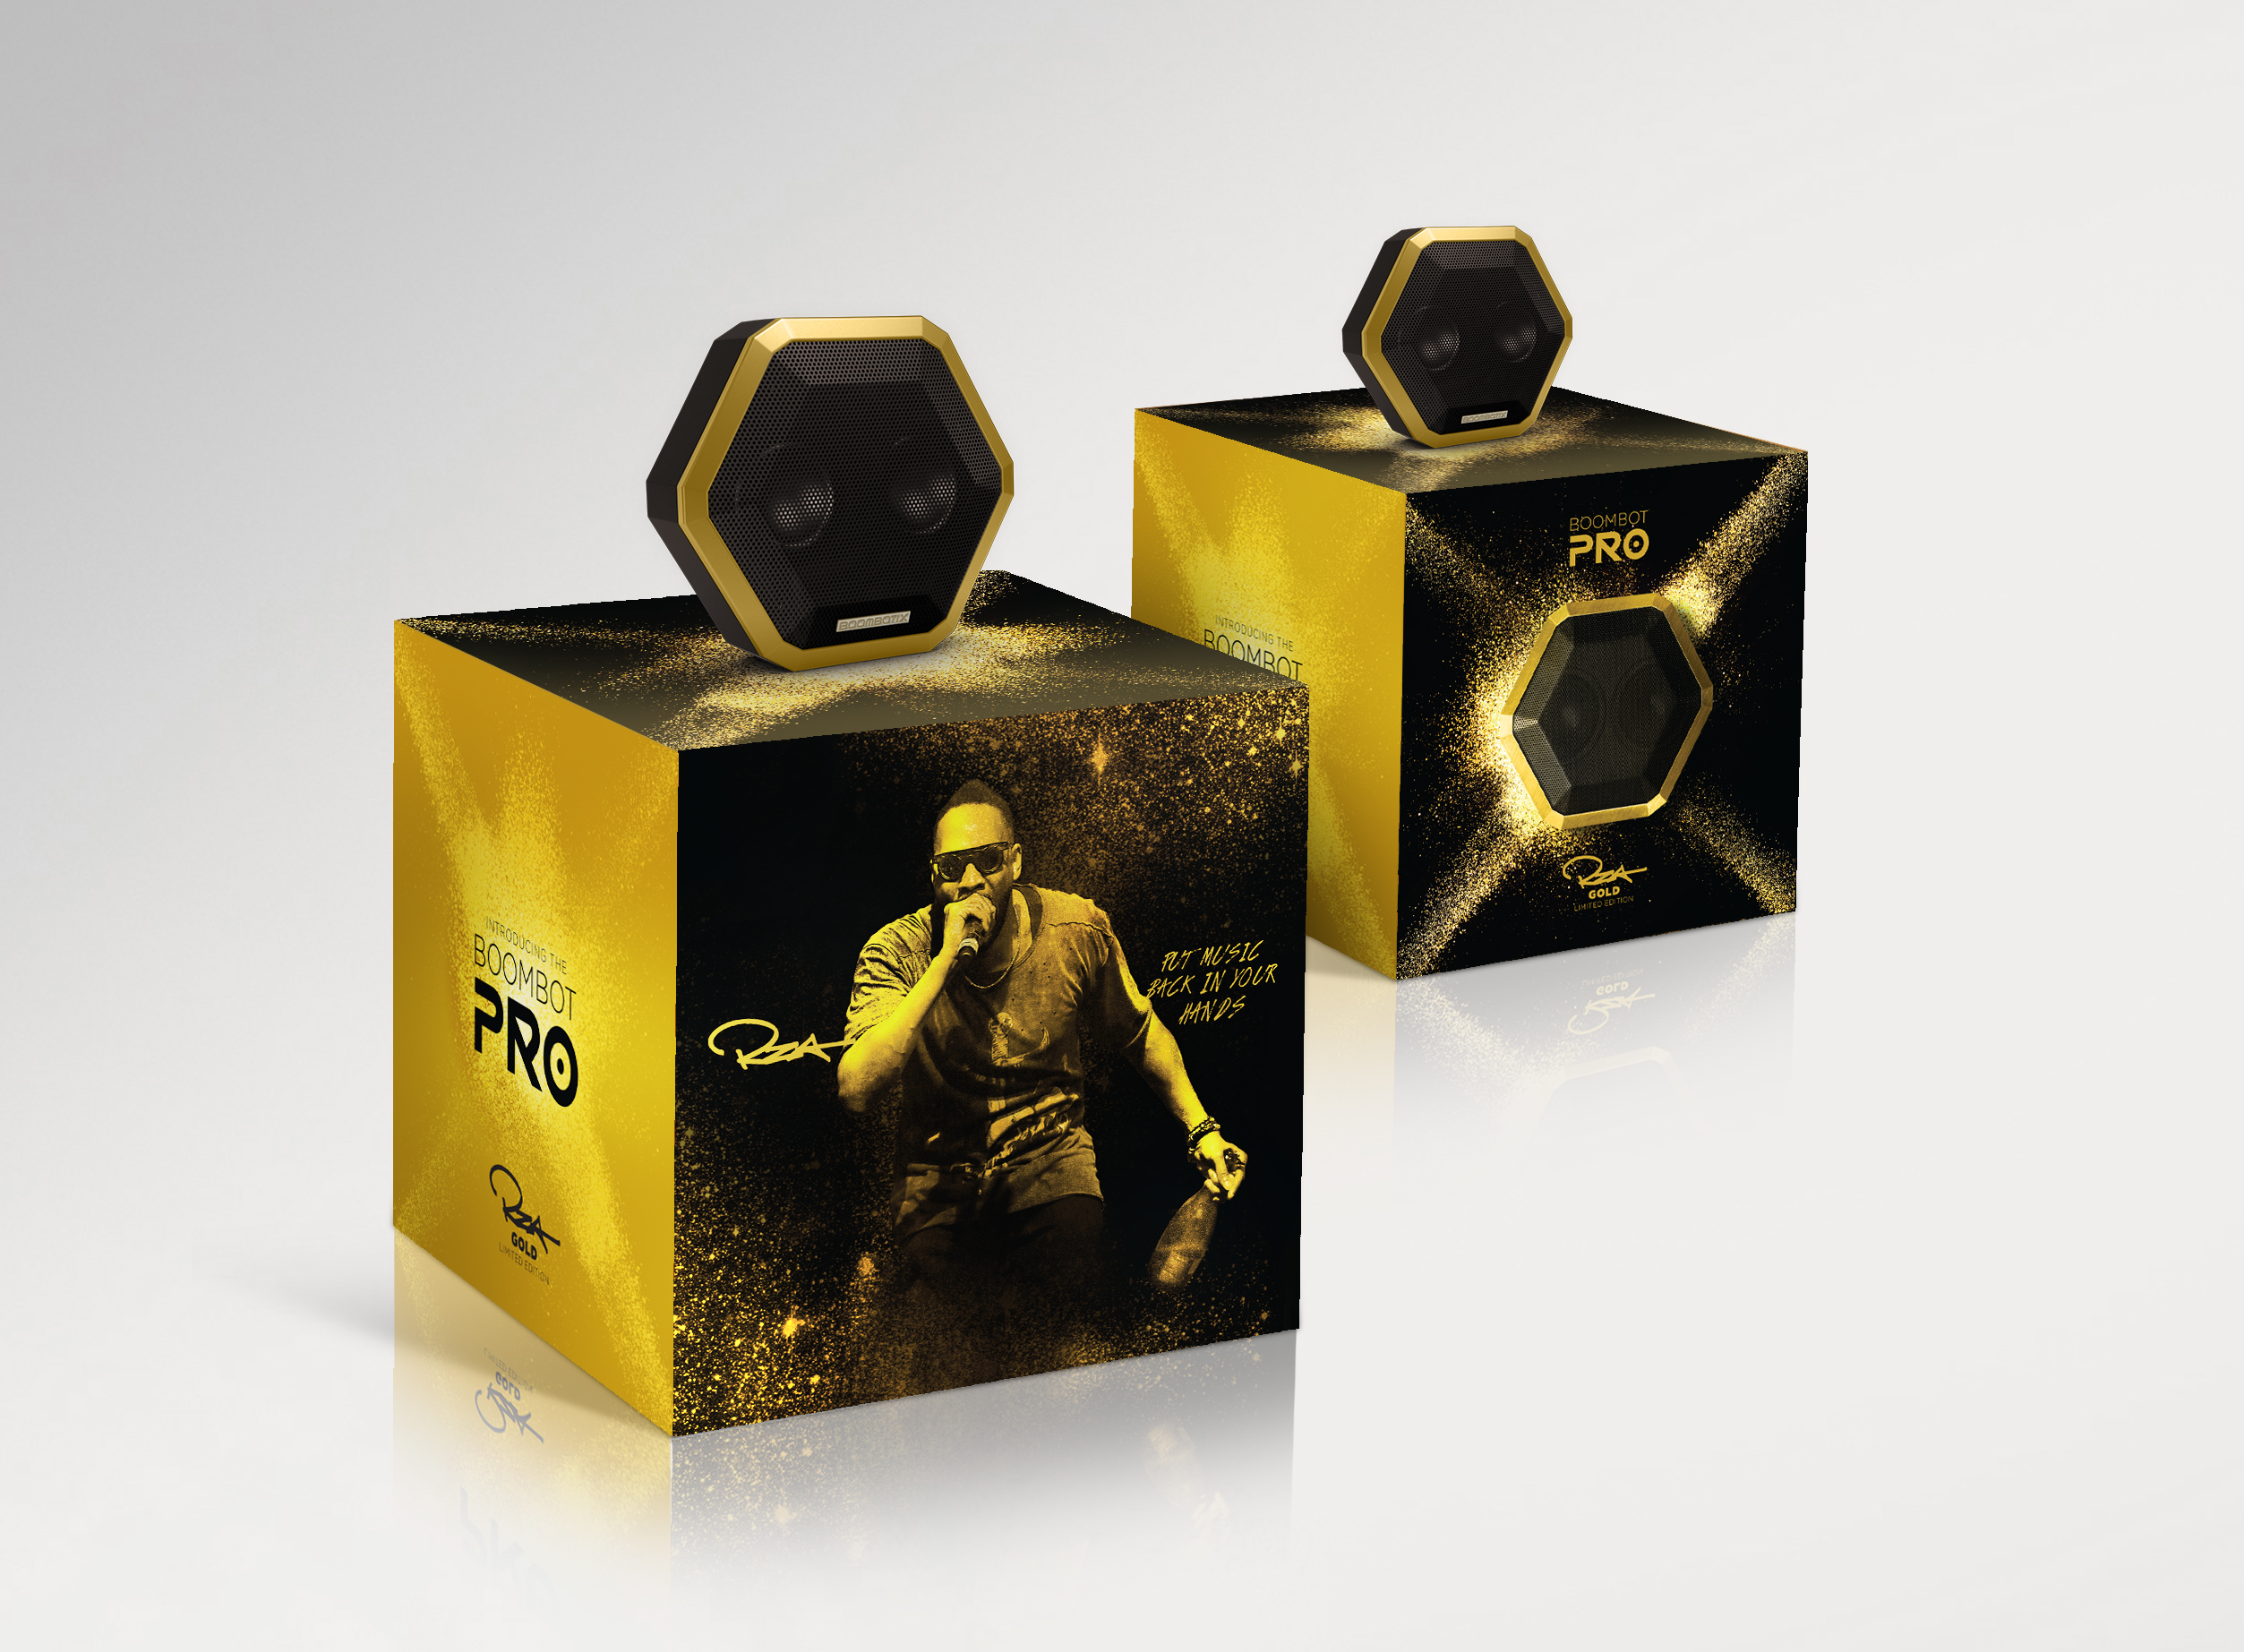 Boombotix Golden RZA edition speaker and packaging